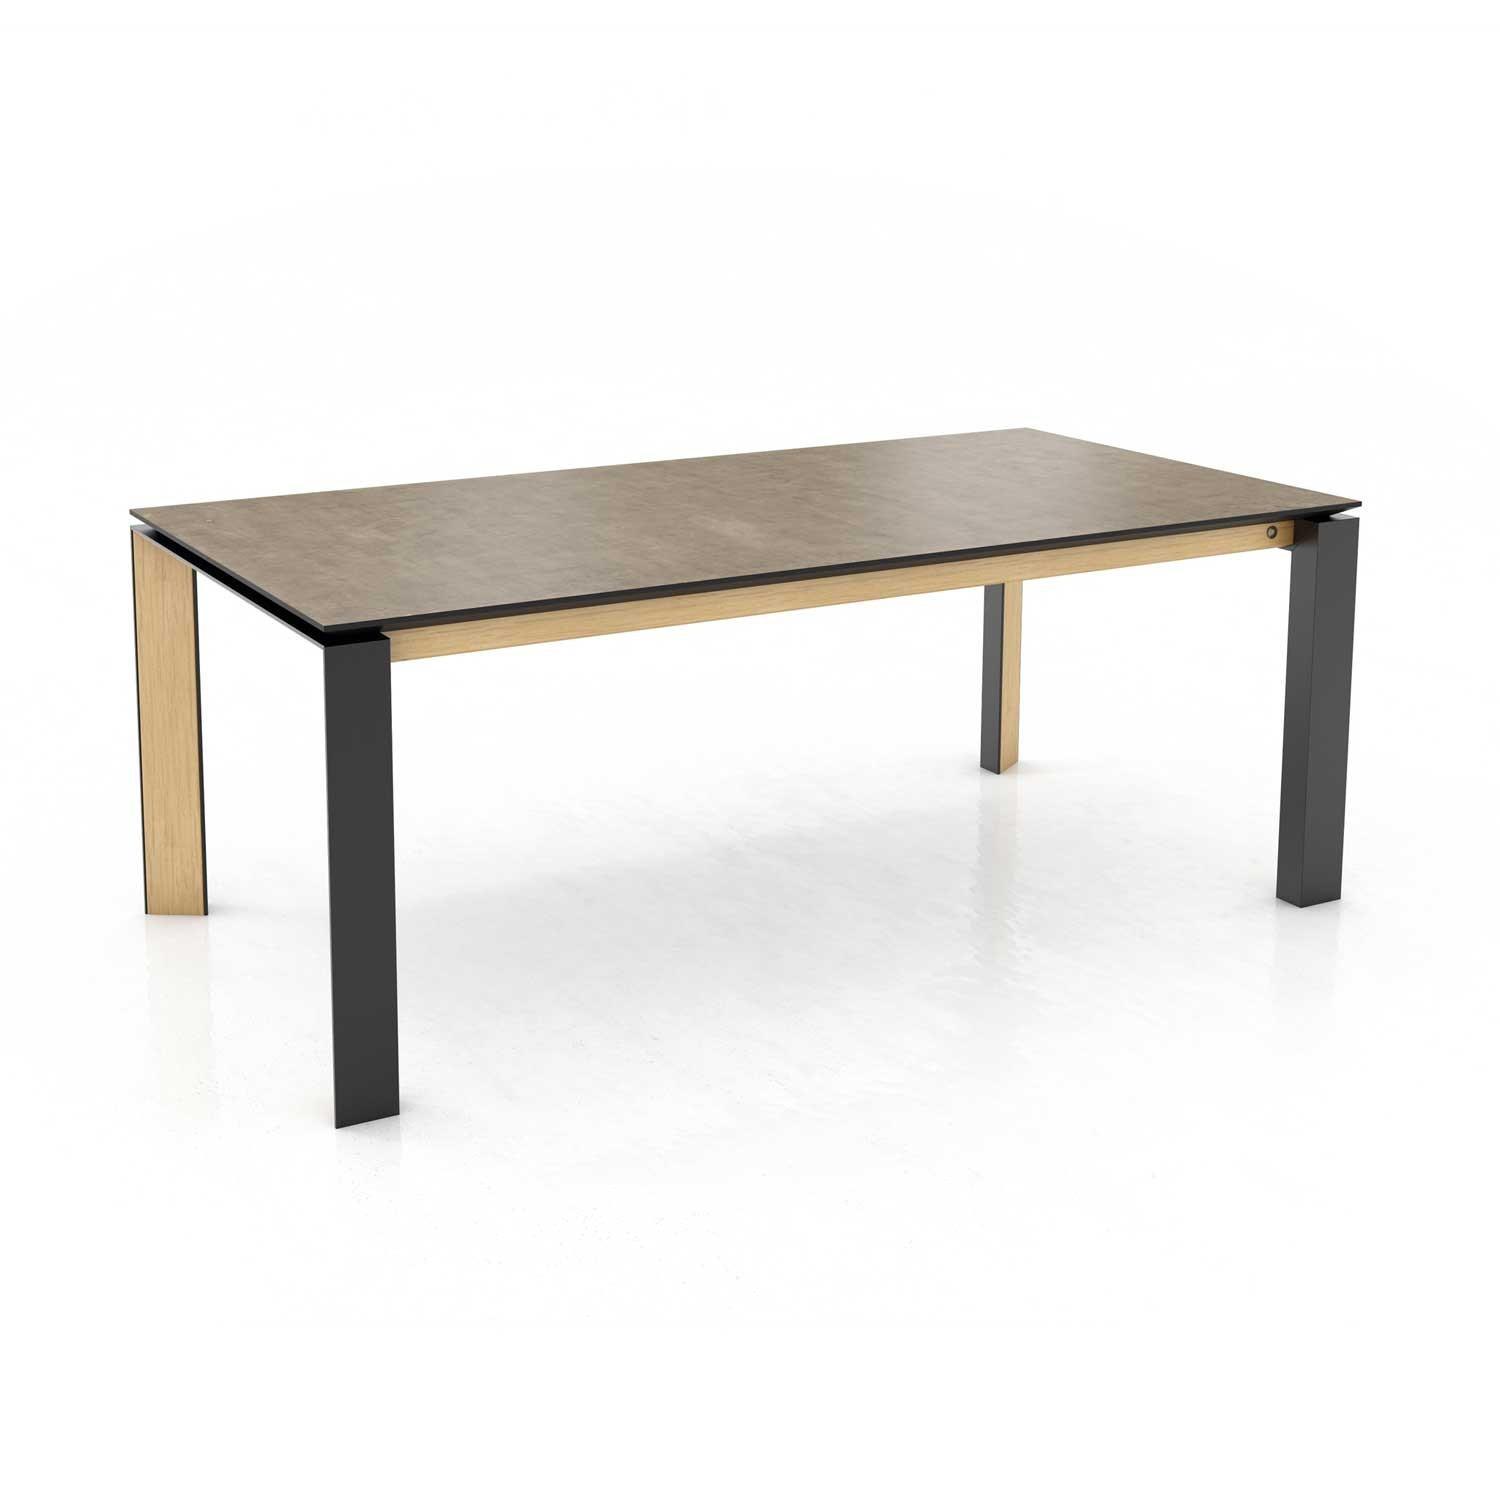 Mason metal leg PB3 Ceramic + walnut extending dining table